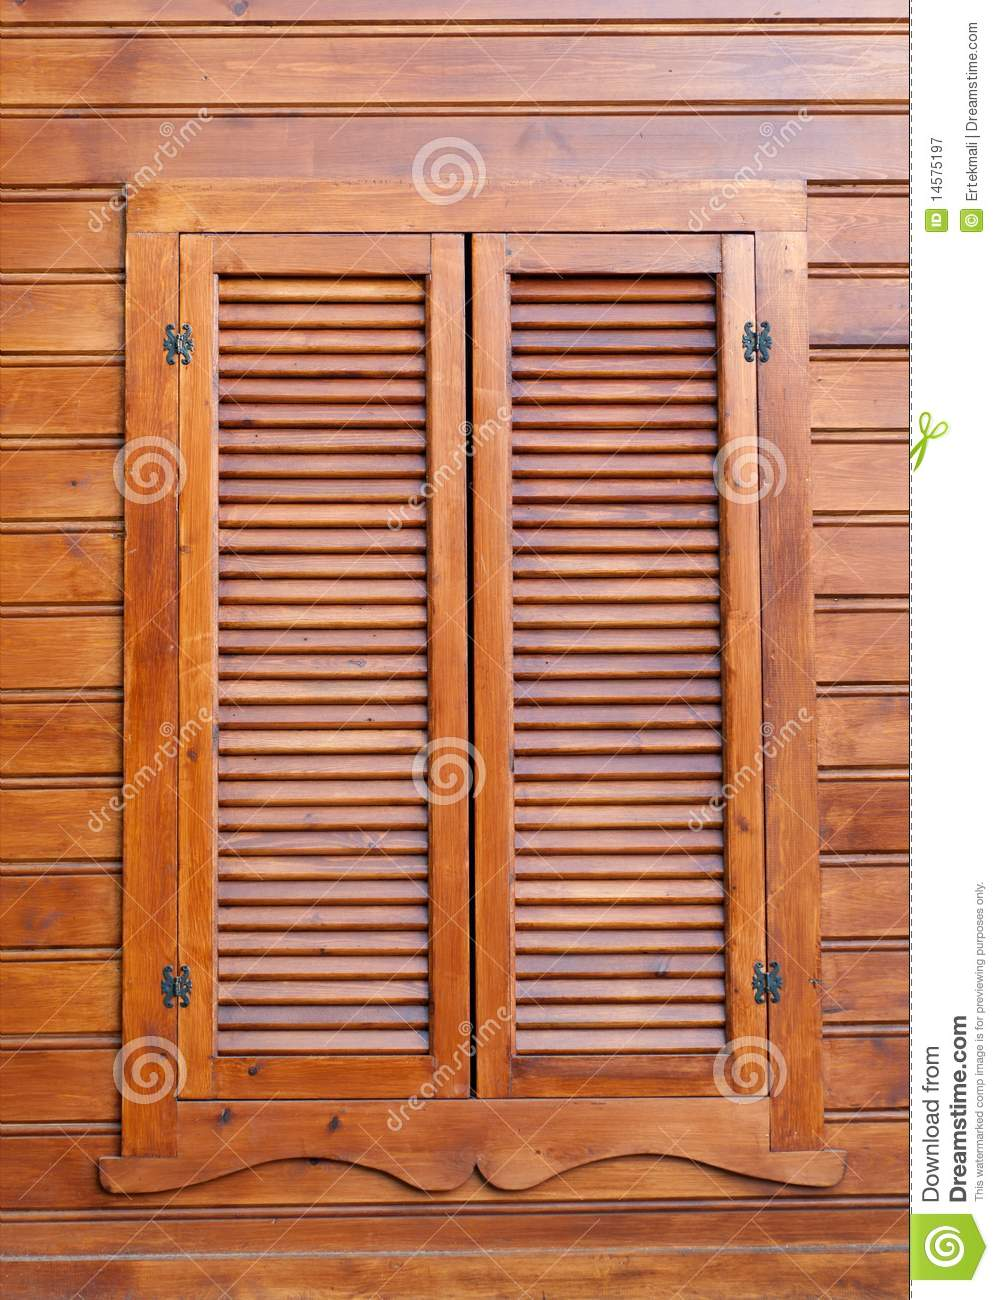 Wood Shutters Closed : Closed wooden shutters on a panneled wall stock